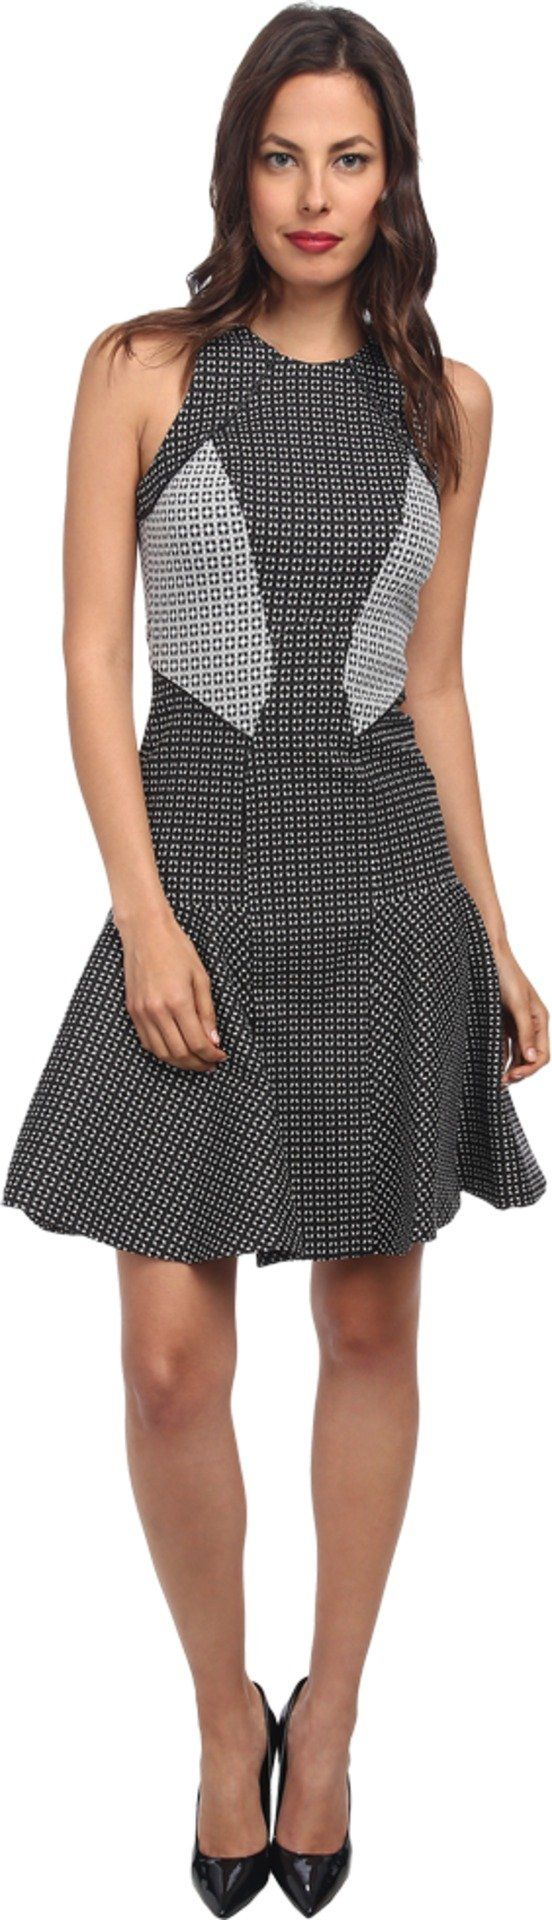 ZAC Zac Posen Women's Printed Drop-Waist Dress Black/White Dress. All eyes will be on you in this fashionable, flirtatious dress. Sleeveless design. Flattering bodice seaming. Flared pleated skirt. Back zip closure. 56% cotton, 39% polyamide, 5% elastane. Dry clean only. Made in the U.S.A. This item may ship with an attached security tag. Merchandise returned without the original security tag attached or a damaged tag may not qualify for a refund. Measurements: Length: 38 in Product...